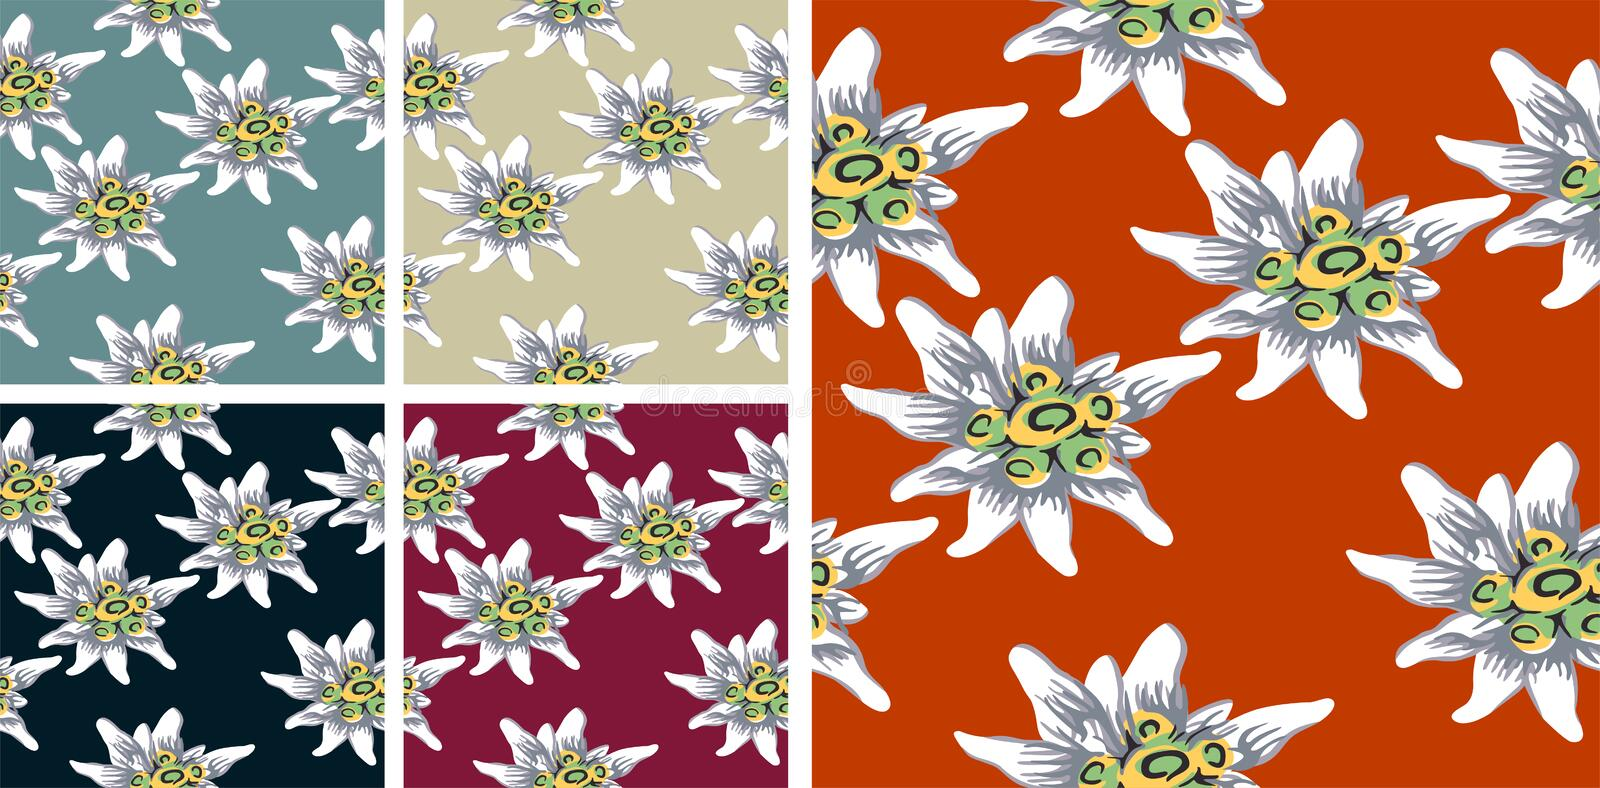 Edelweiss pattern pack vector illustration